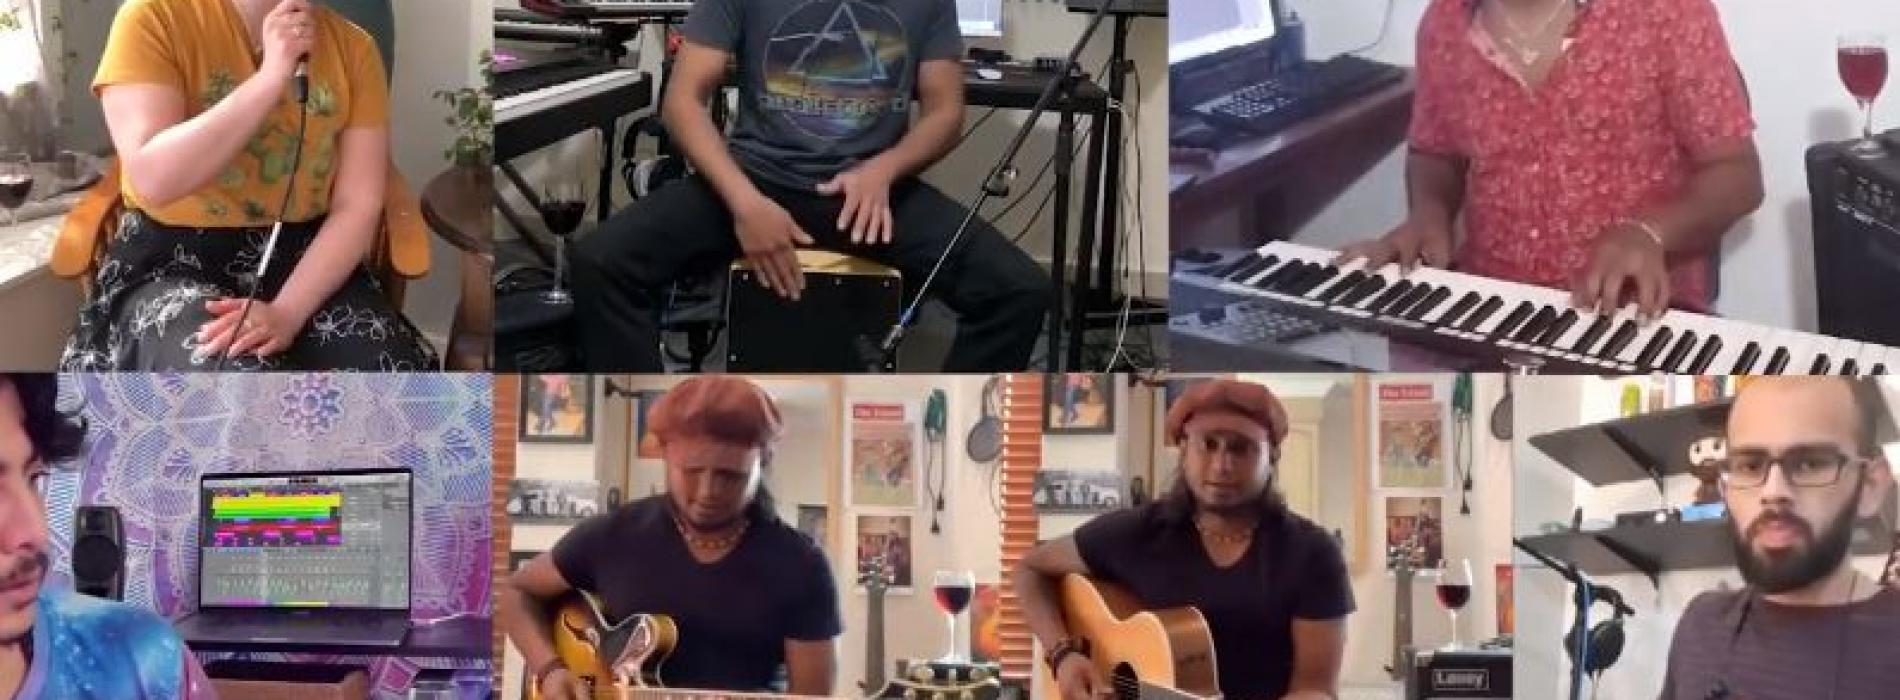 New Music : Summer Wine Cover by Buddhi, Rose, Nisha, Nisala, Nuwan & Sashank